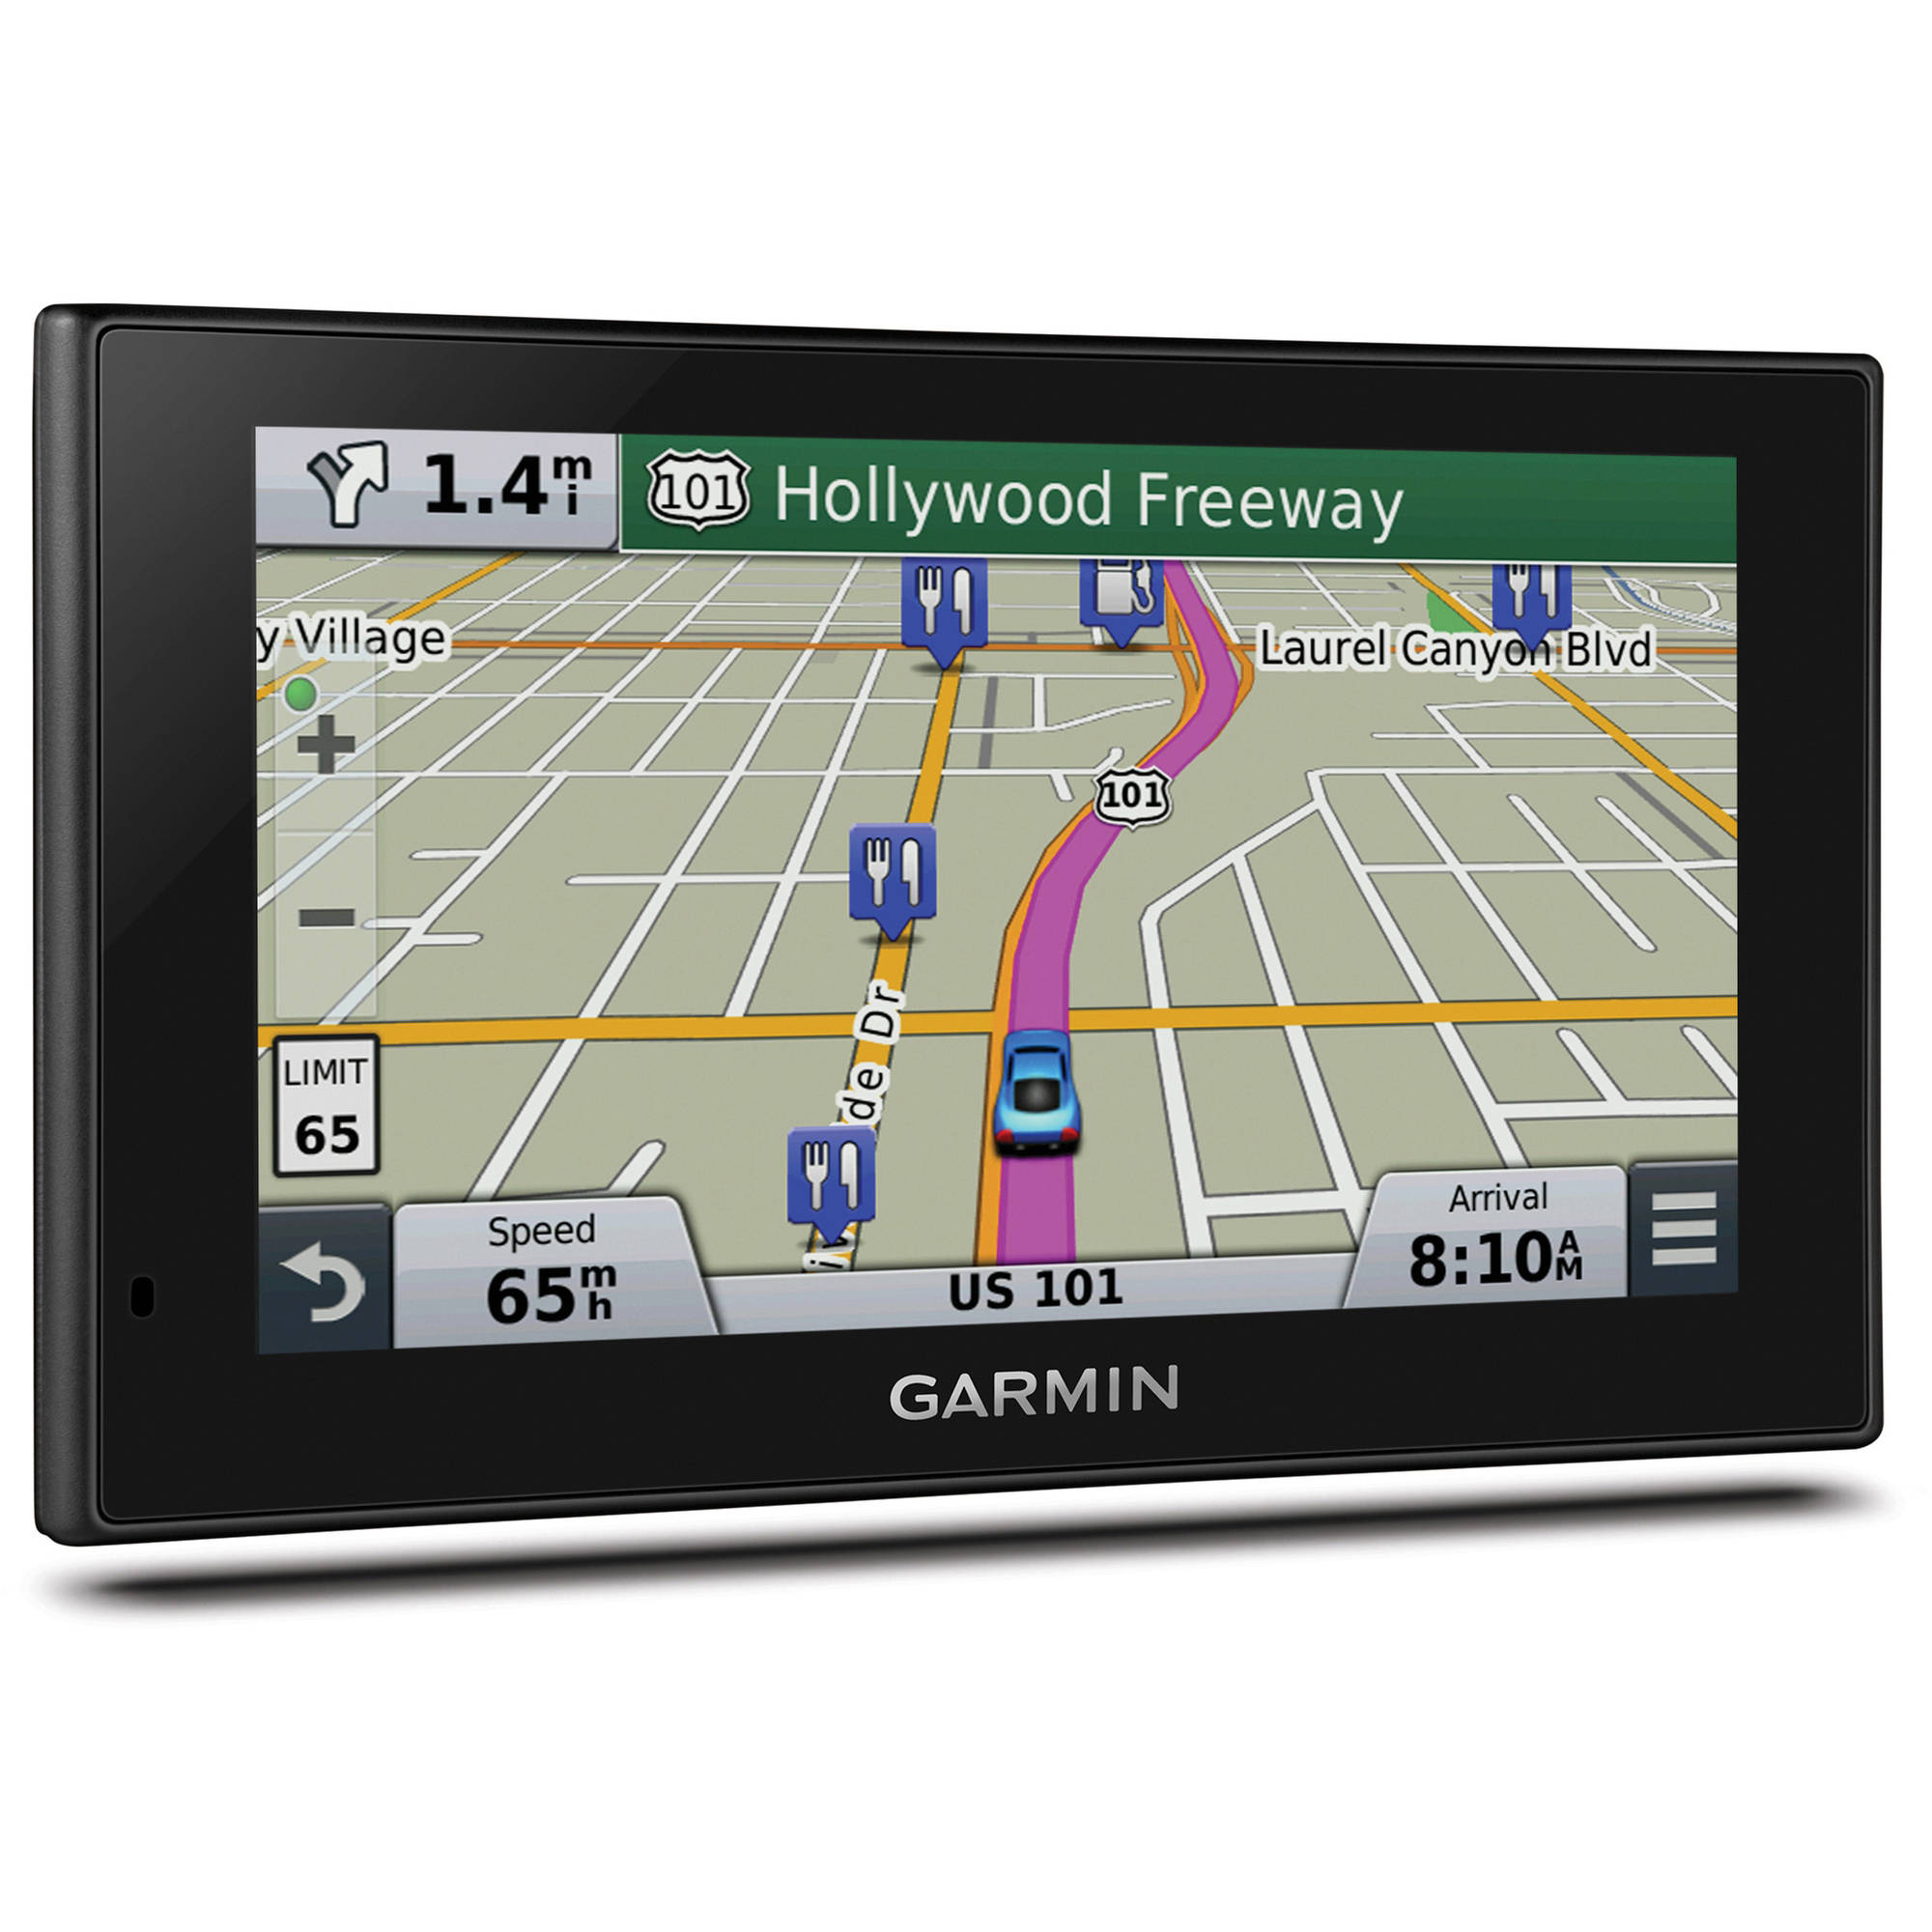 "Garmin nuvi 2789LMT 7"" Travel Assistant with Free Lifetime Maps and Traffic Updates"